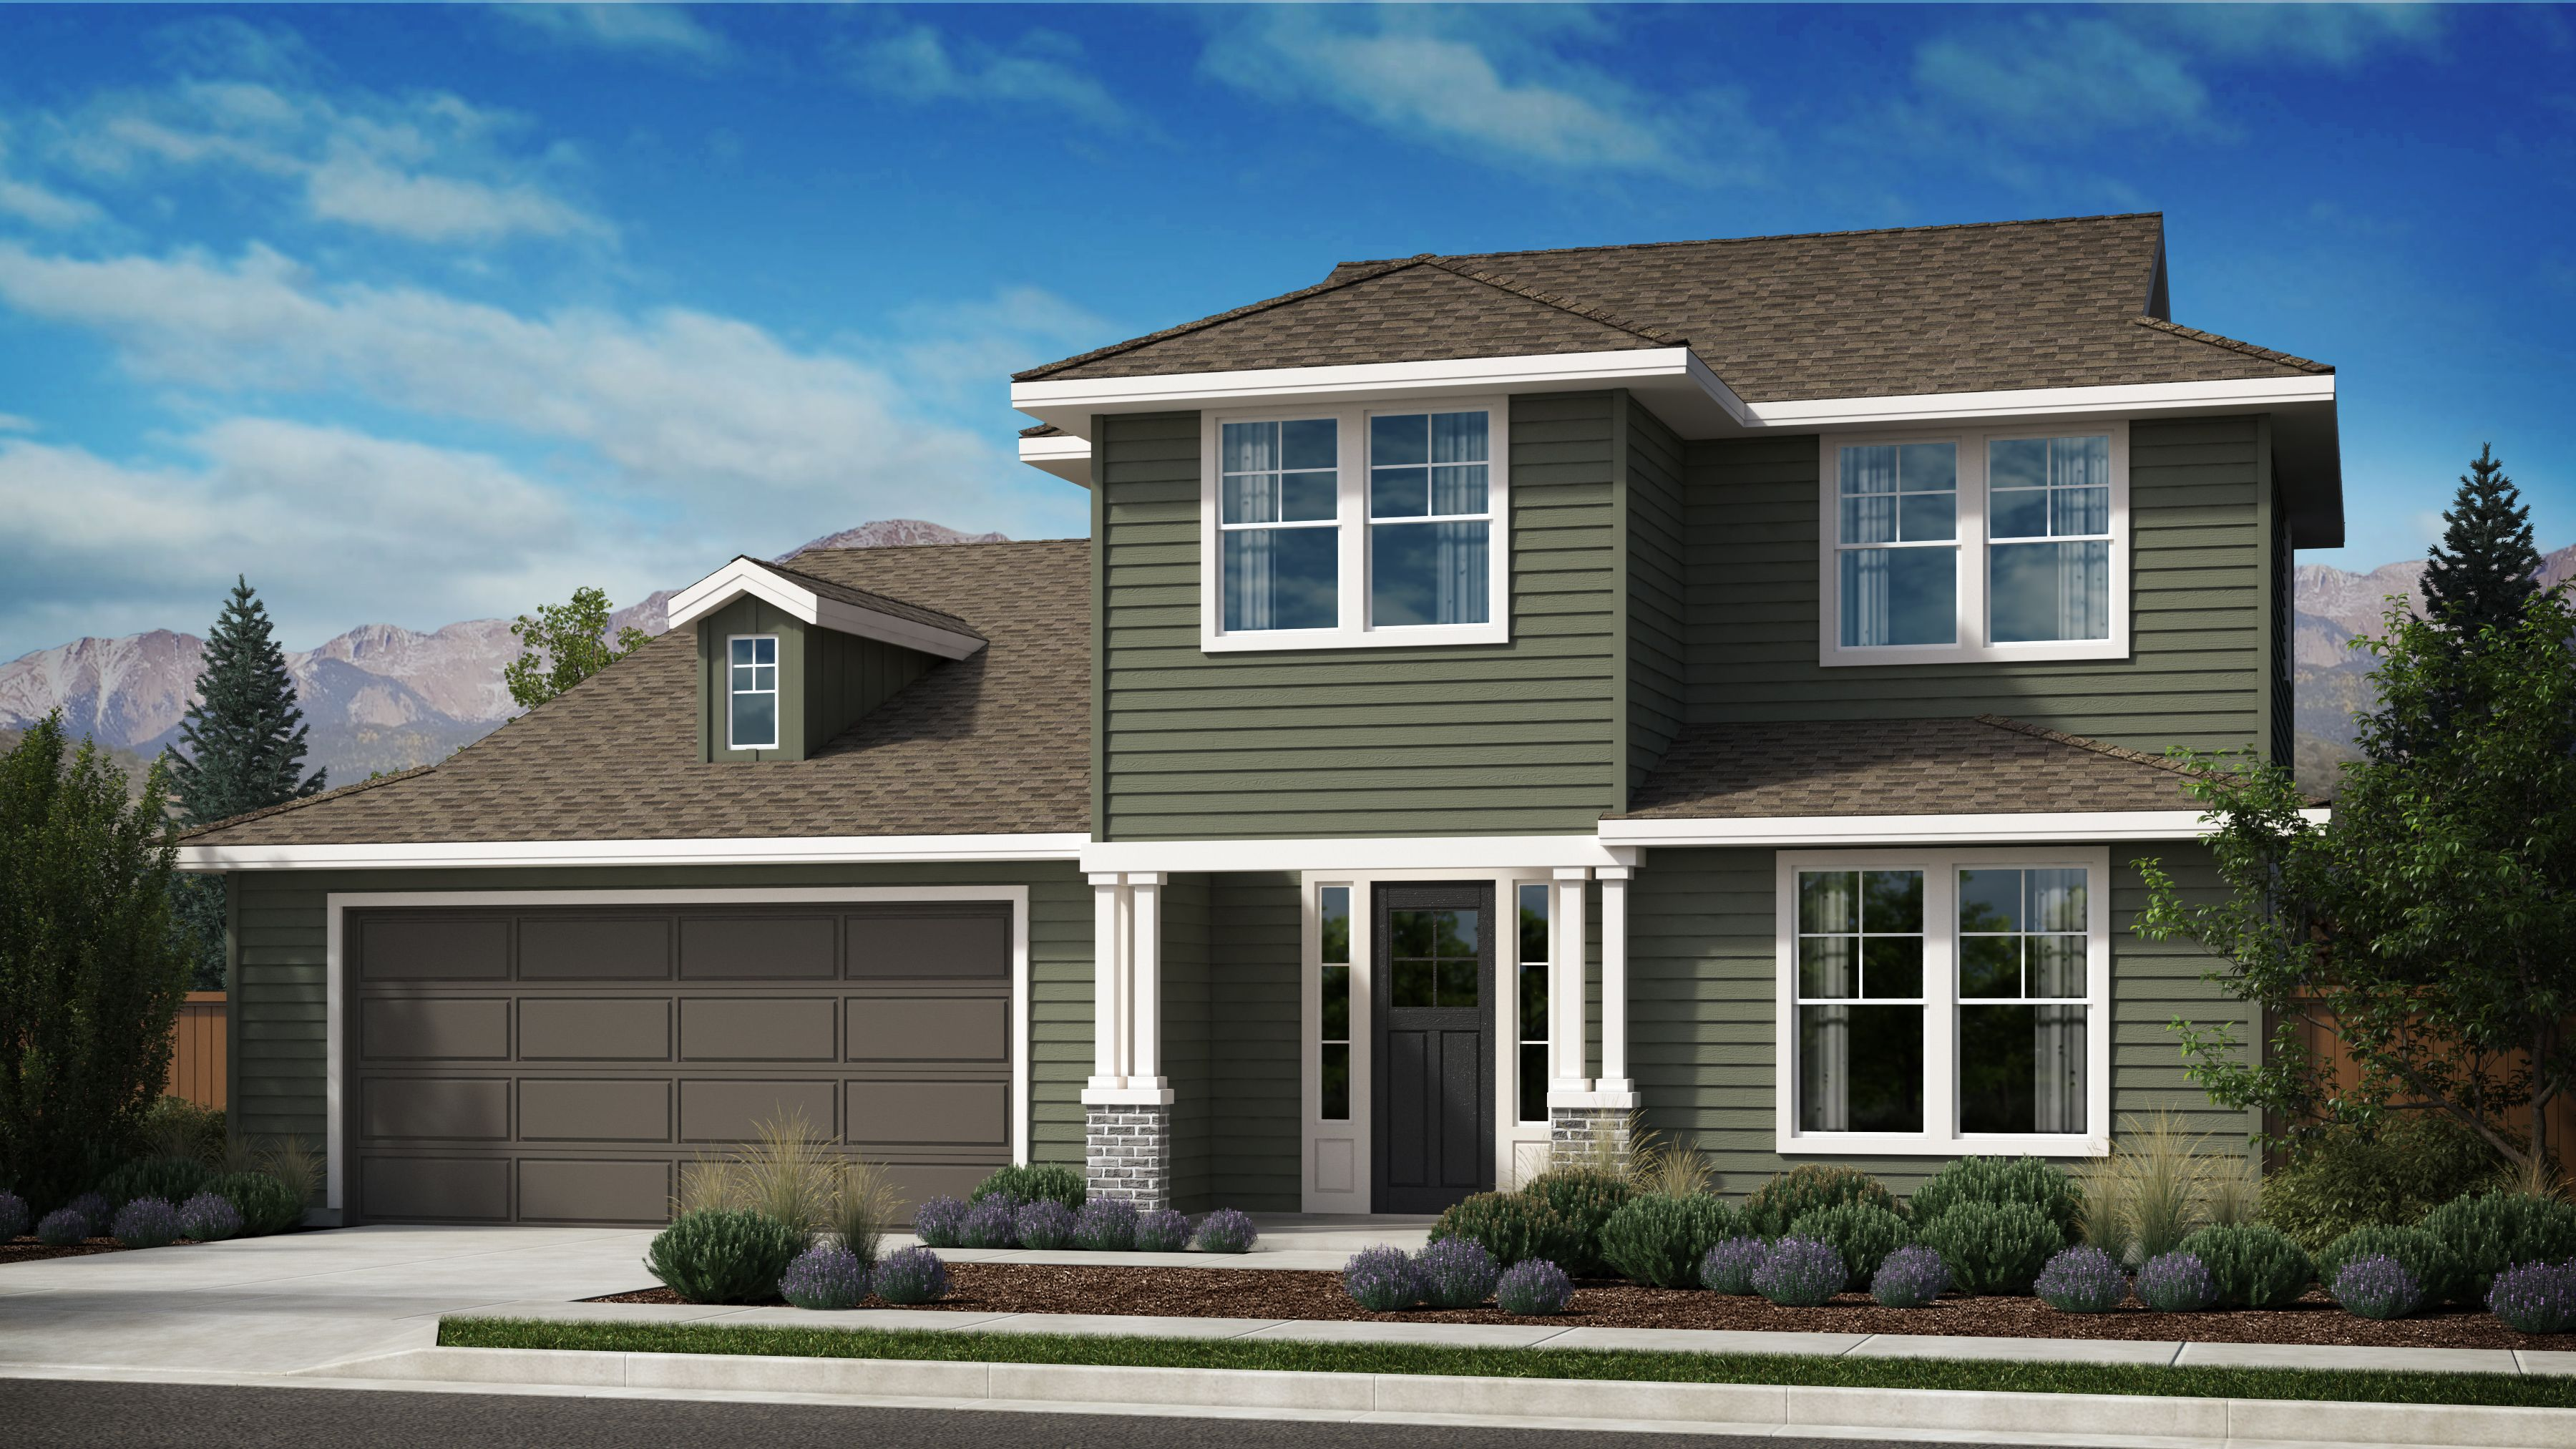 Exterior featured in the Appaloosa Series Plan 4 By Bates Homes in Helena, MT